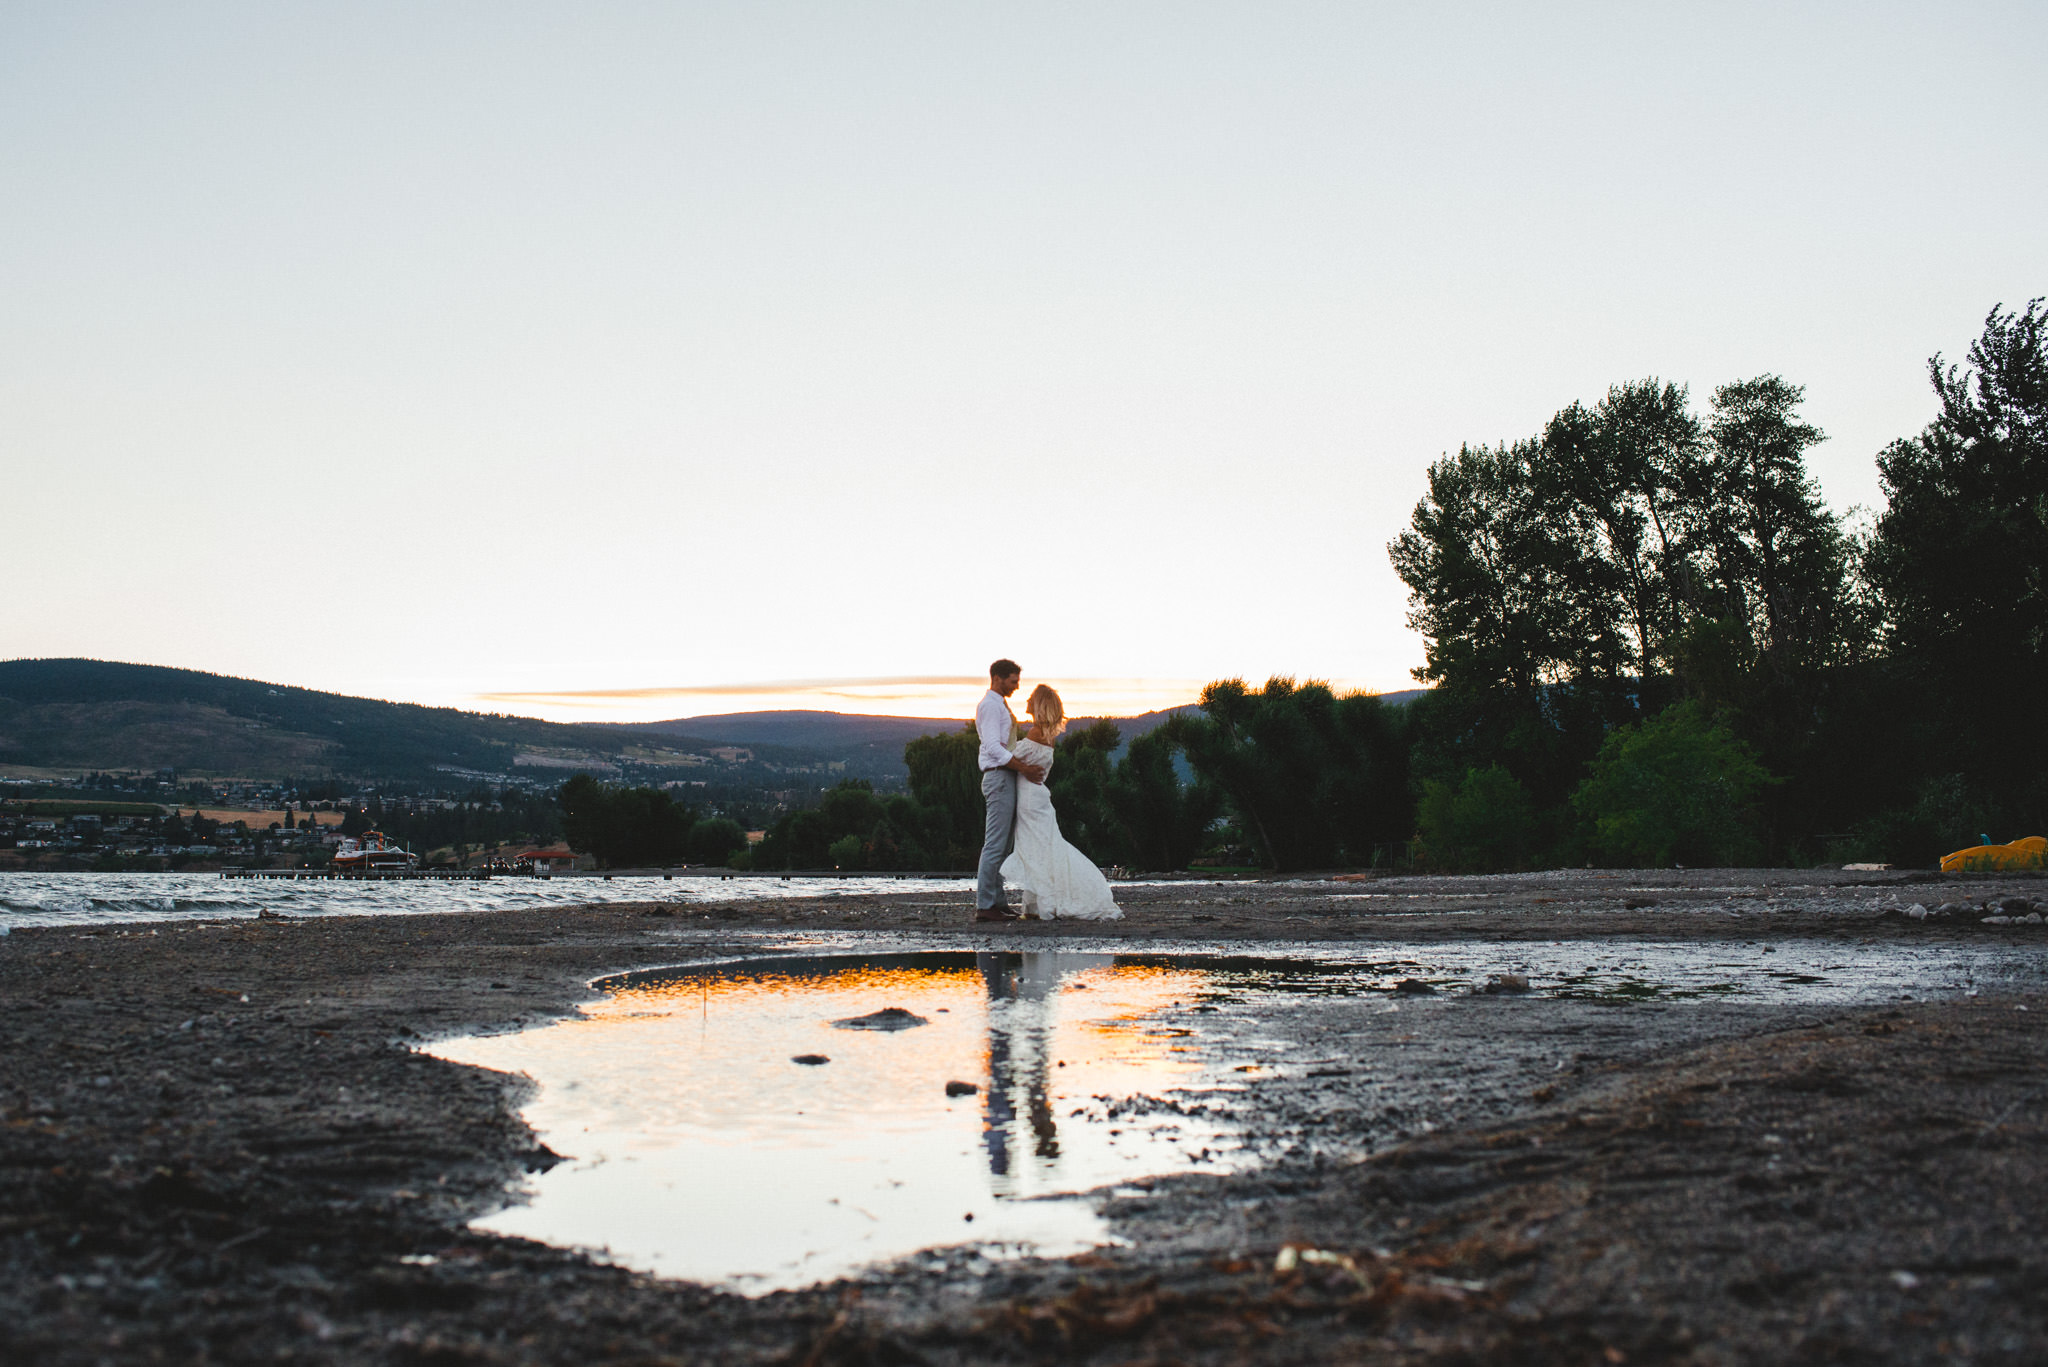 Ronnie Lee Hill Photography, Vancouver Photographer, bc wedding photographer, okanagan wedding photographer, kelowna wedding, union bridal, sunset wedding photo